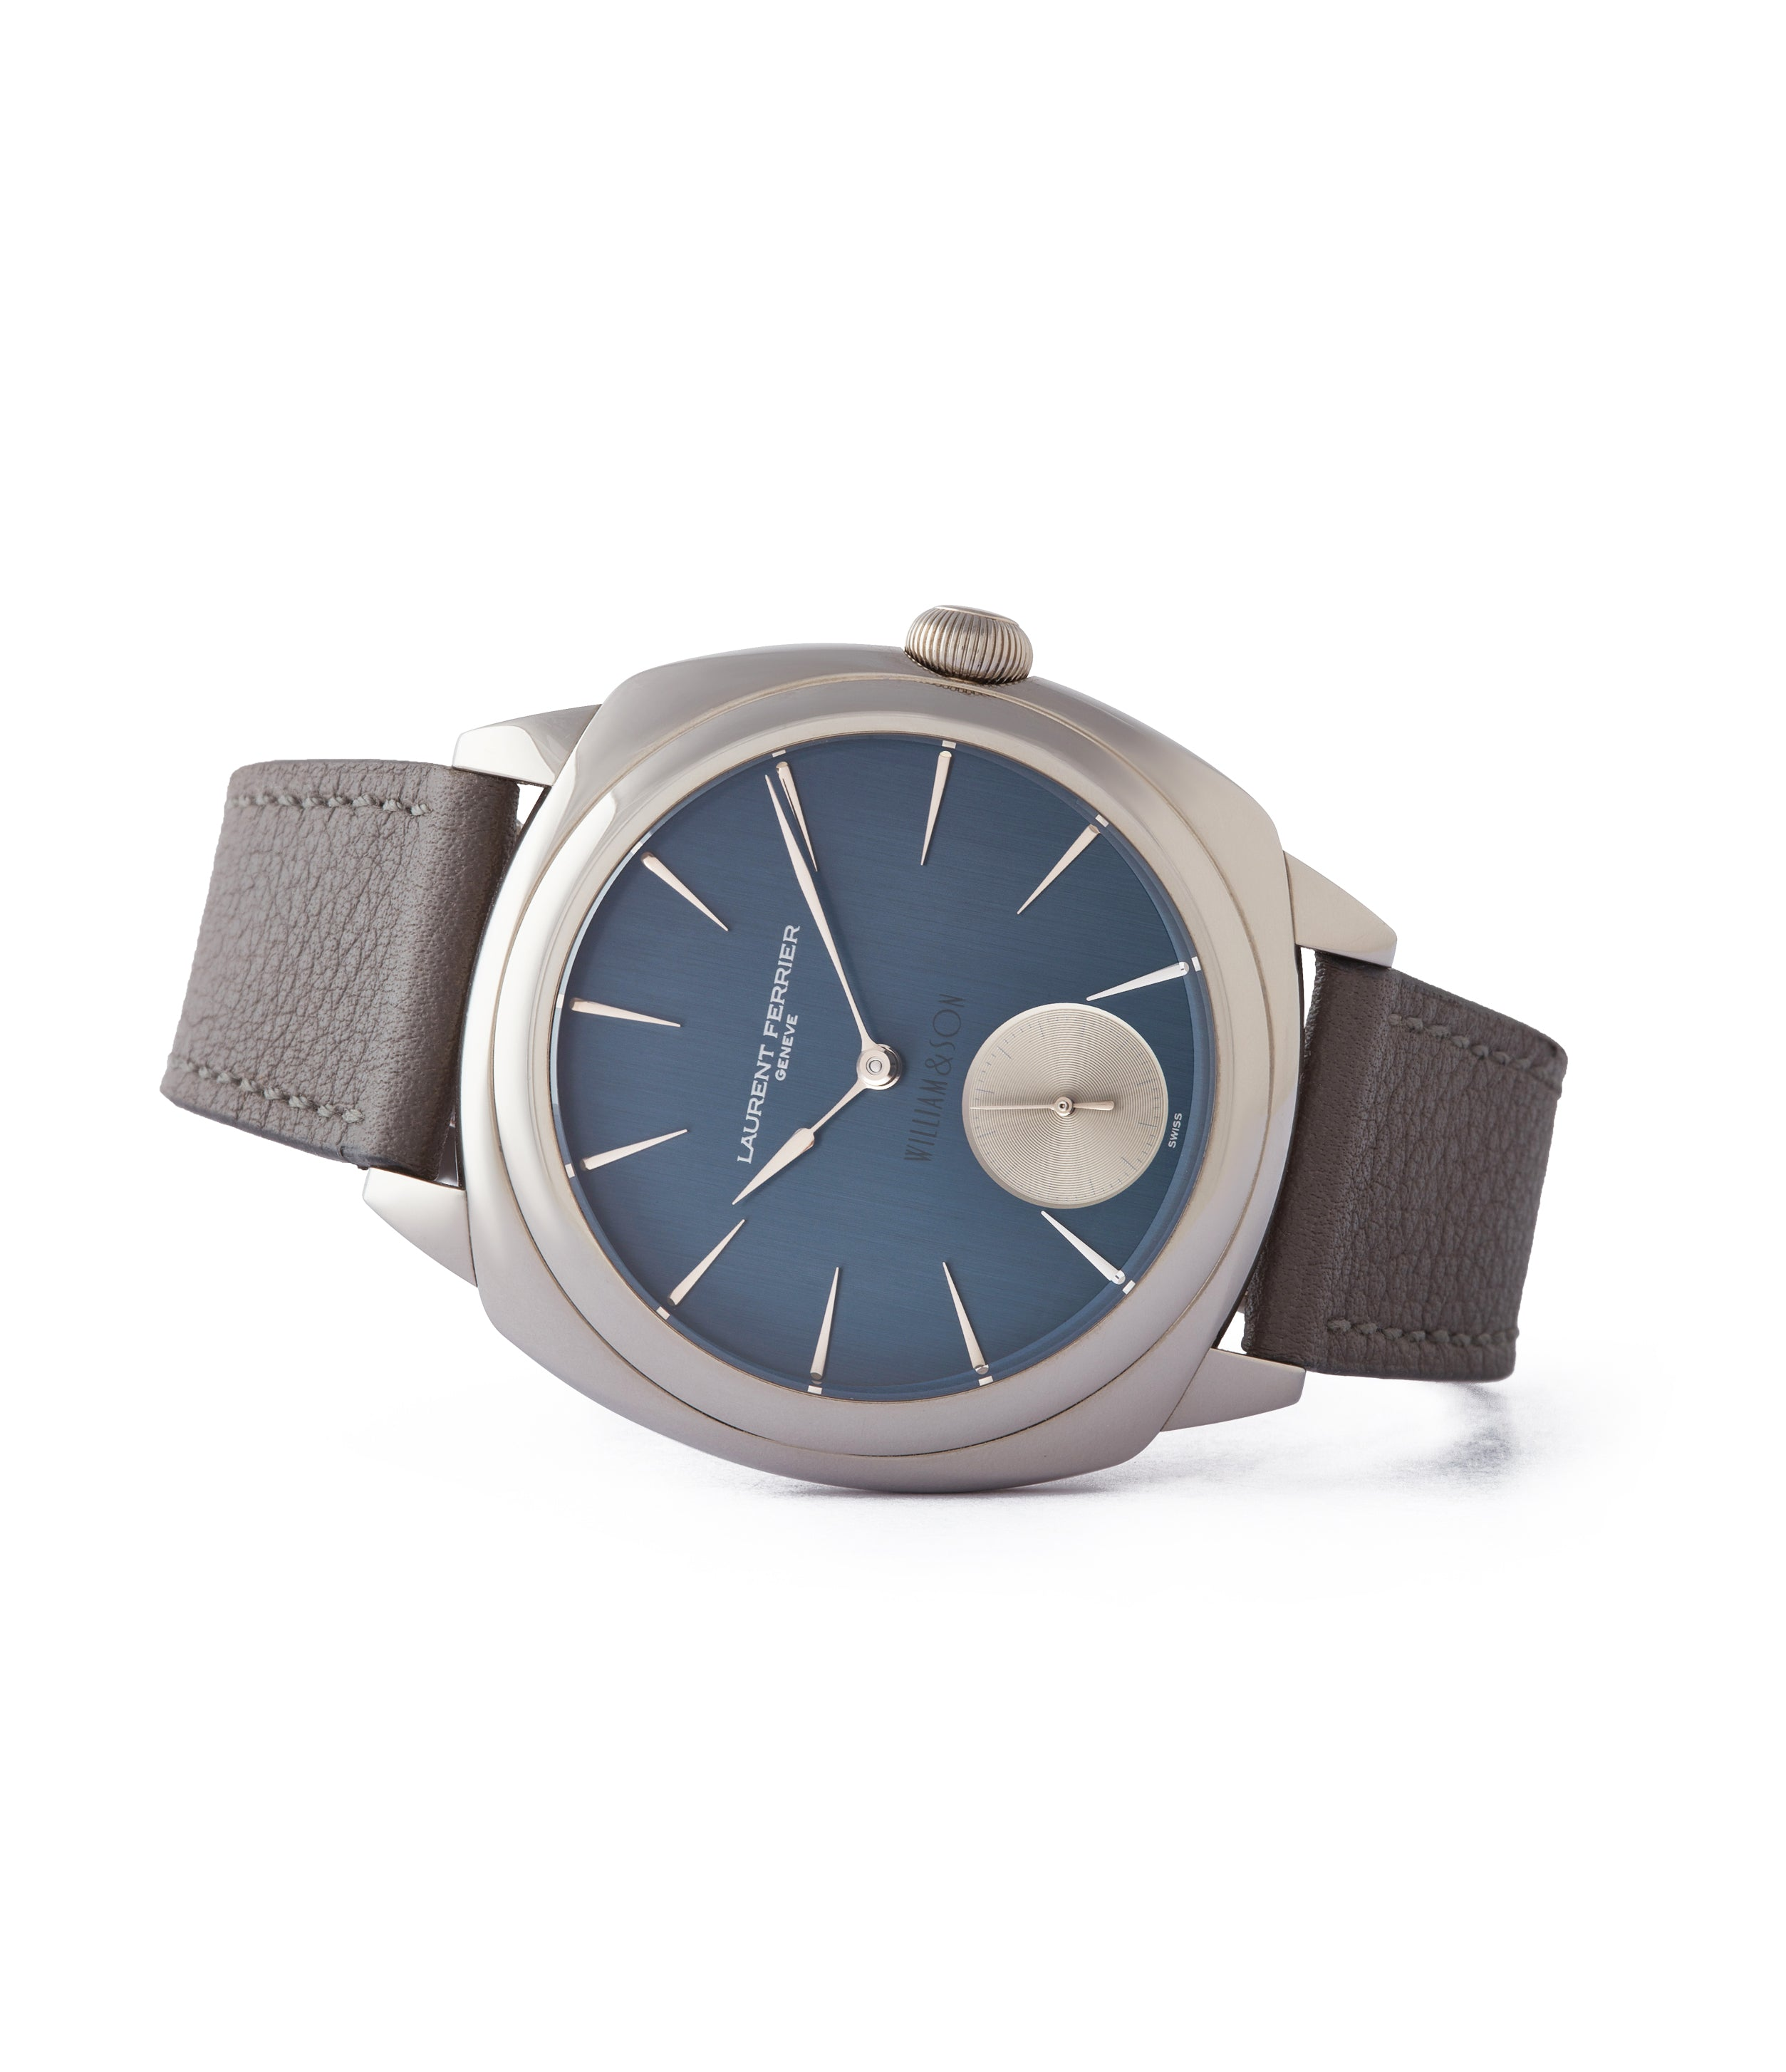 side-shot wirstwatch Laurent Ferrier Micro Rotor LF 229.01 Galet Square William&Son blue dial white gold watch online at A Collected Man London approved seller of preowned independent watchmakers